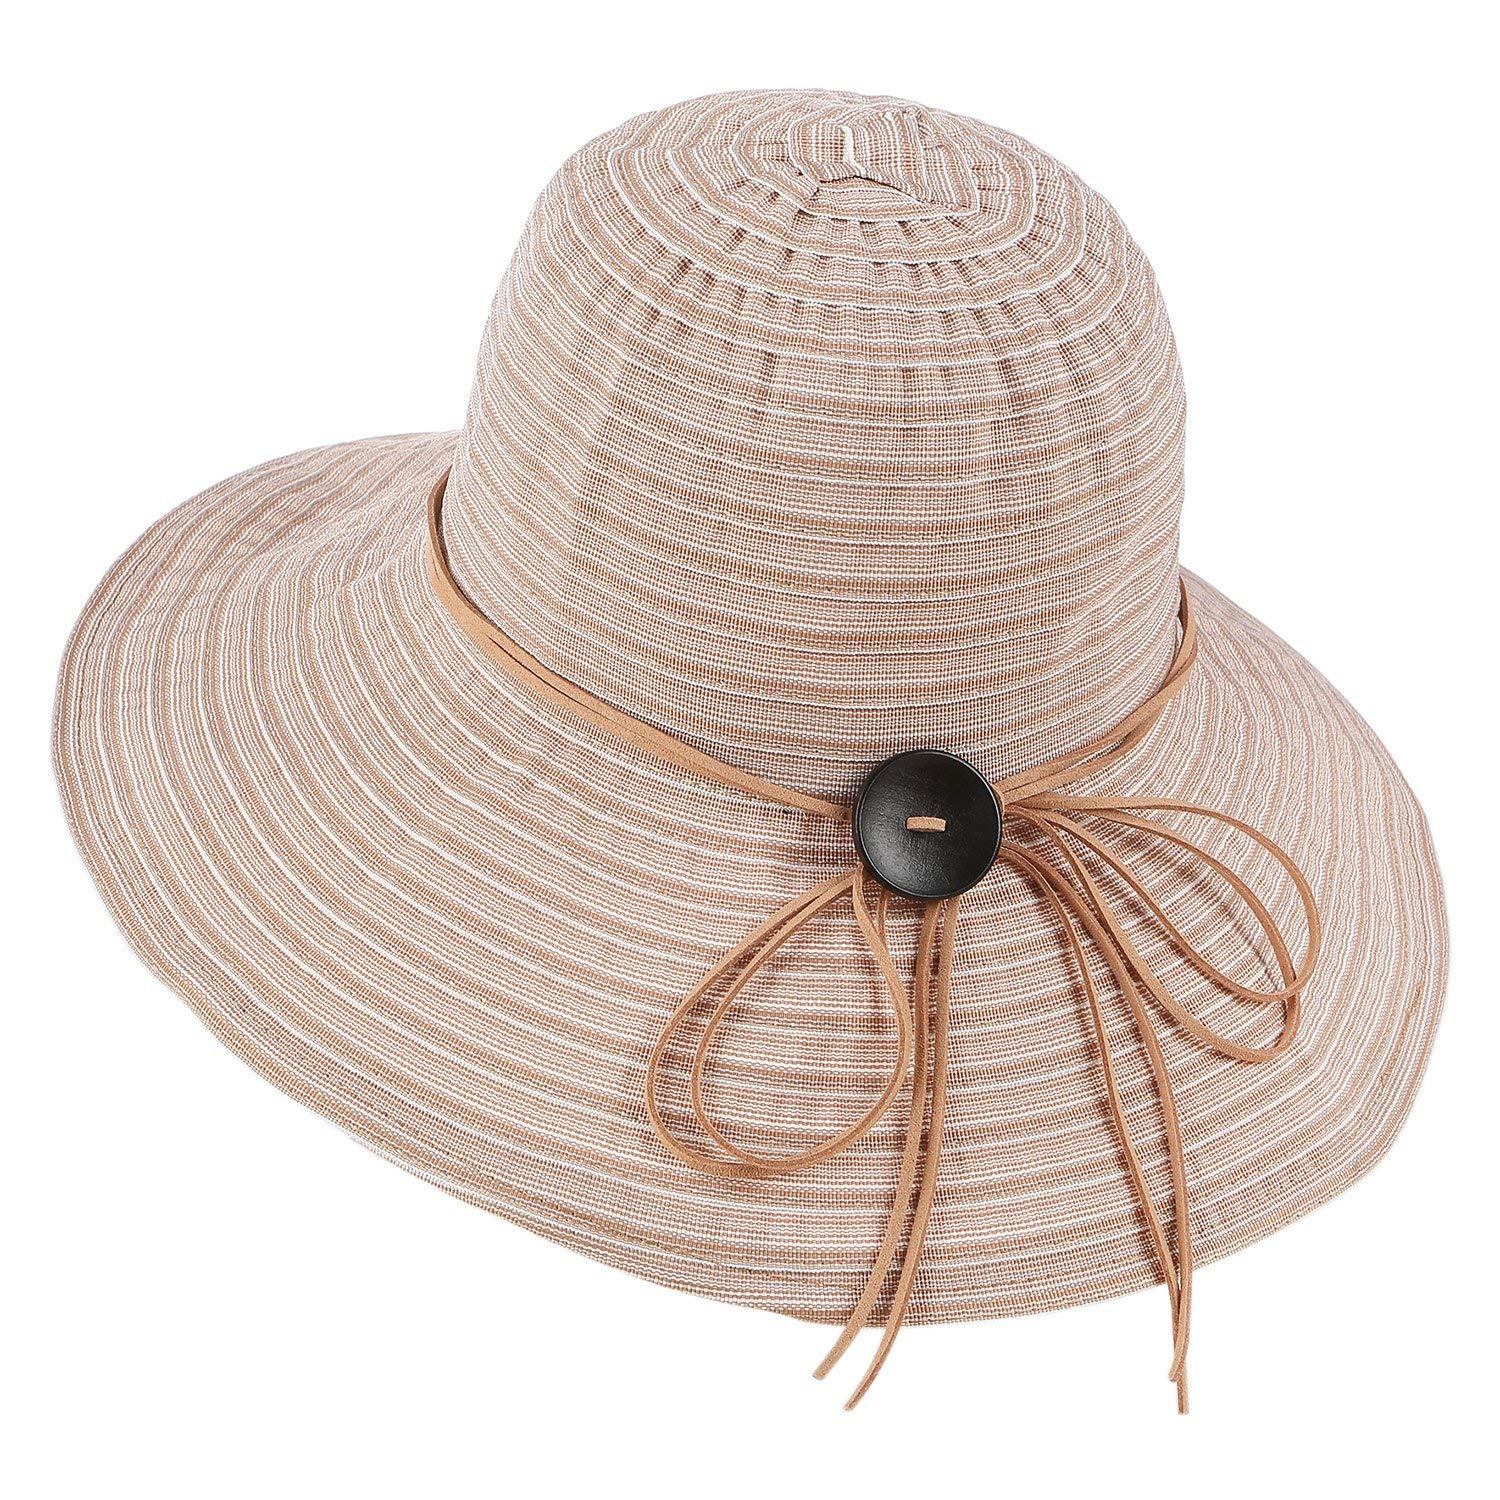 6f16b9b557a Get Quotations · Women s Packable Sun Hat with Chin Cord Wide Brim Cotton  Beach Hat Adjustable